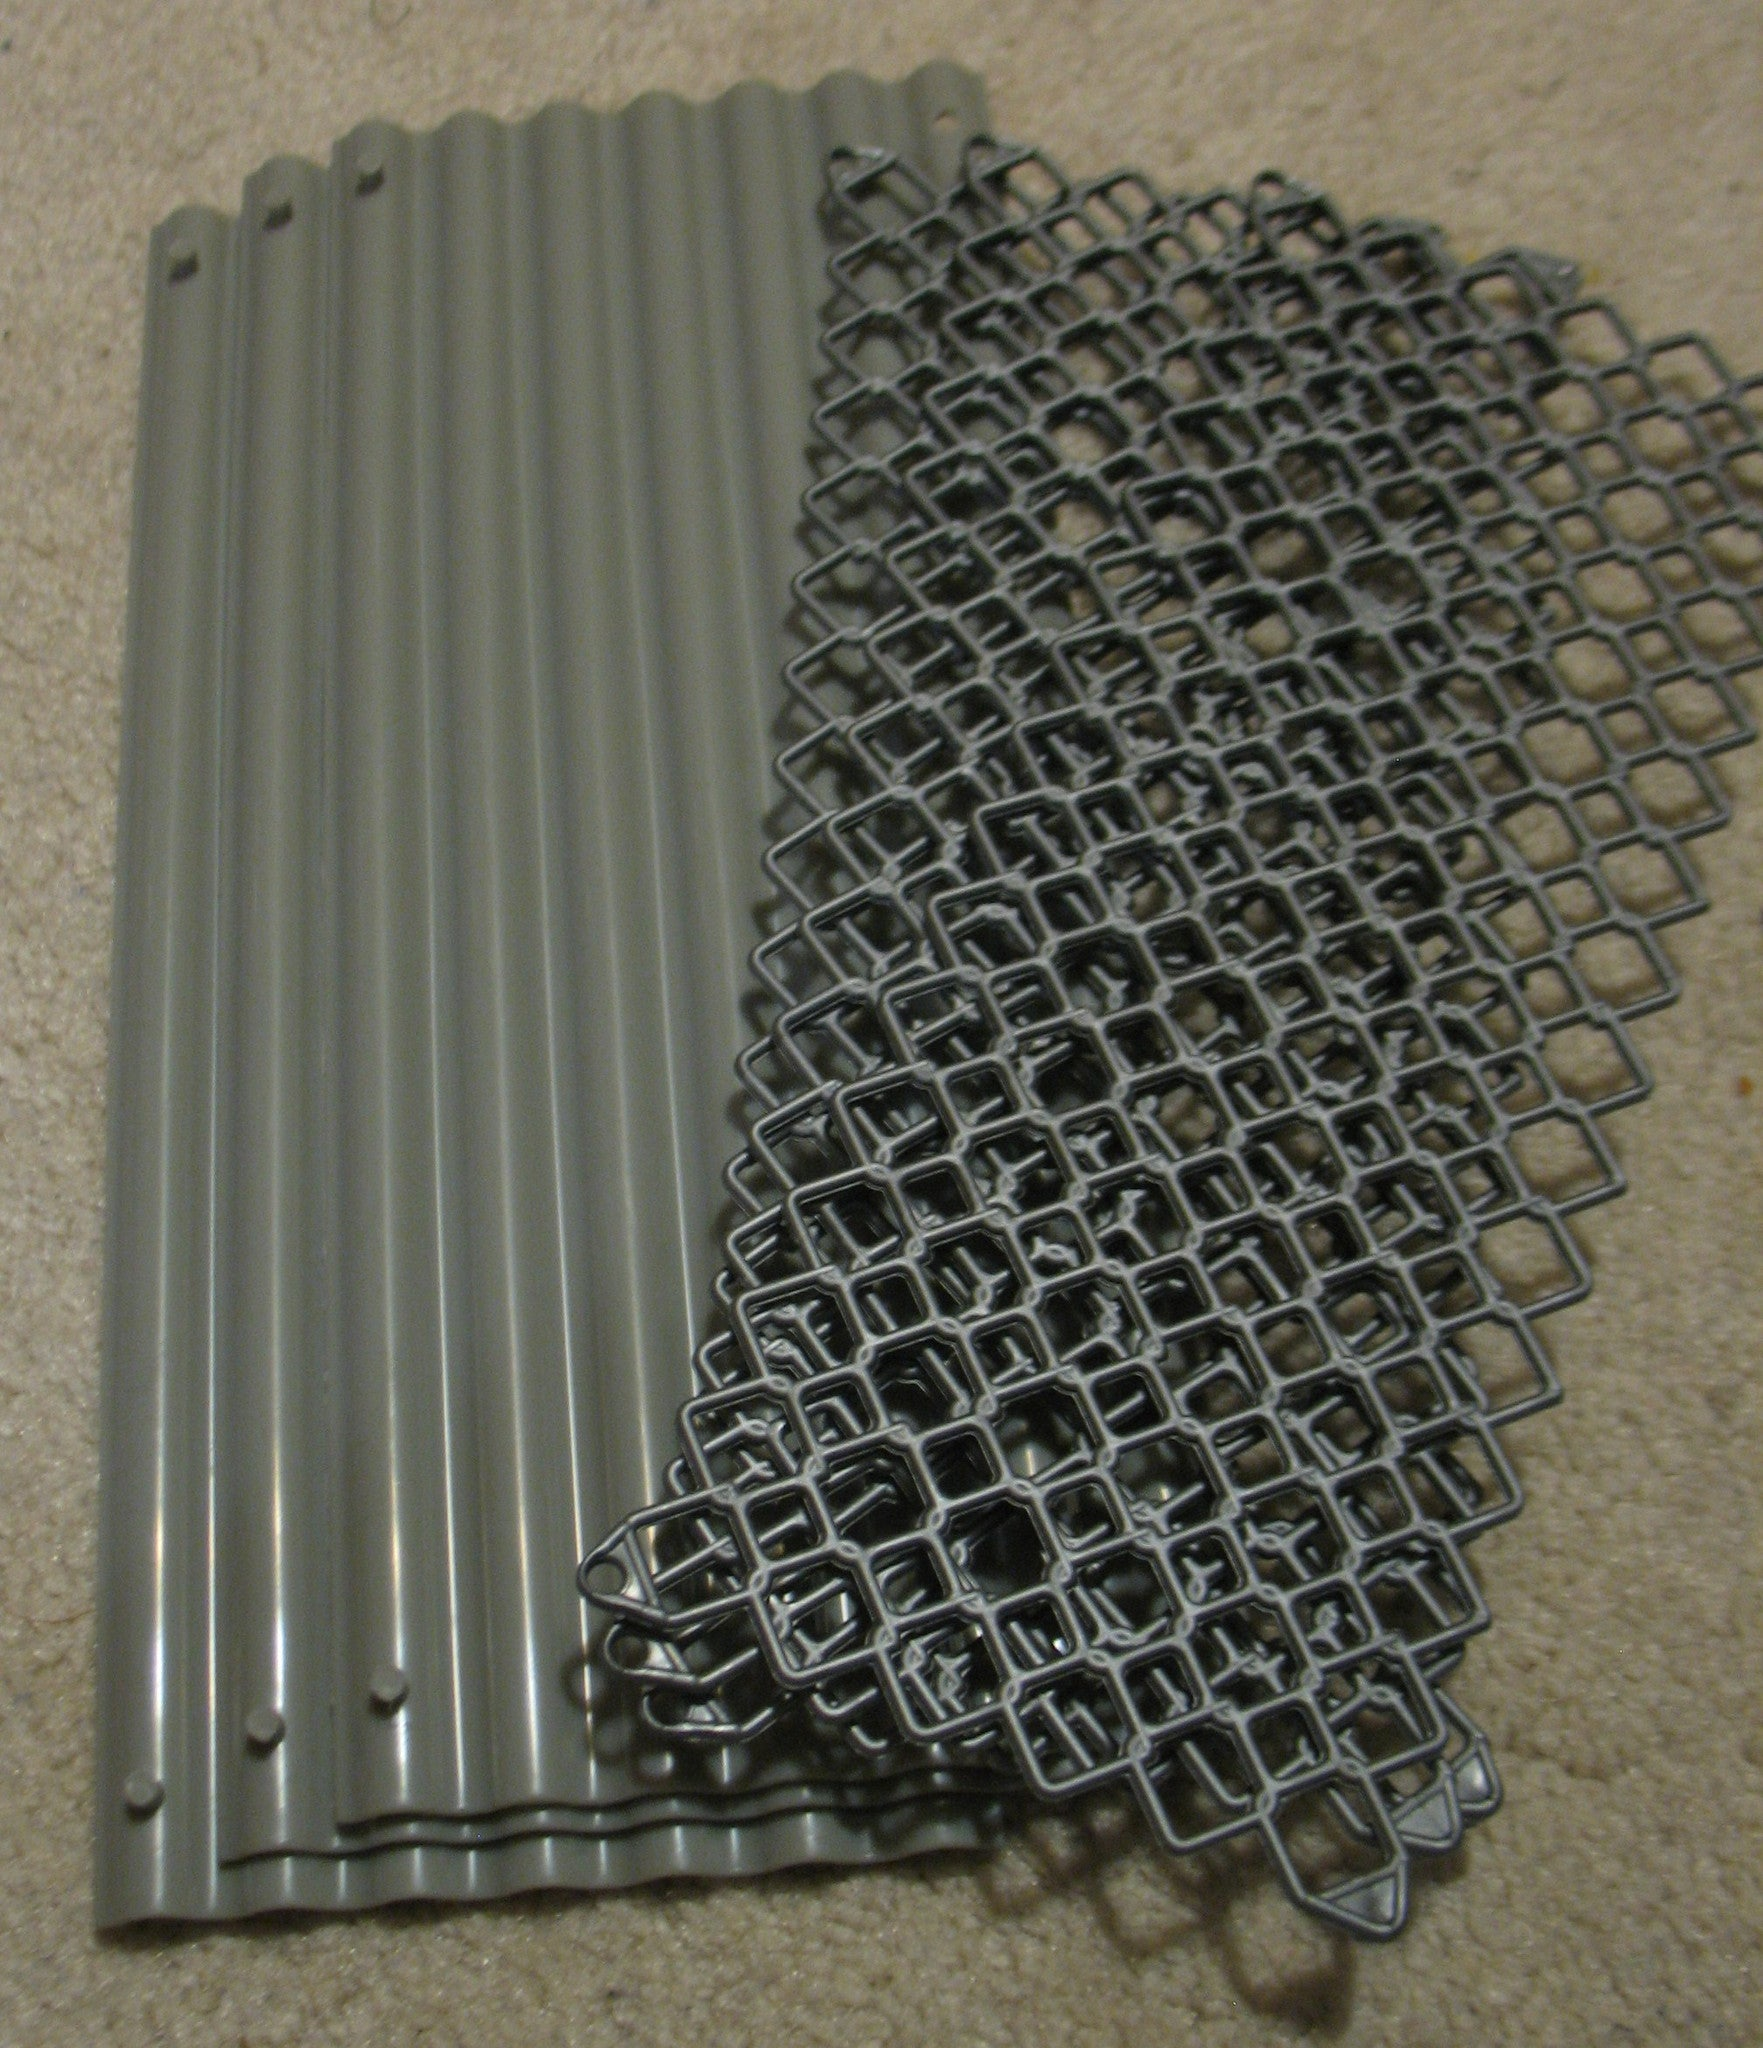 A031 Hasbro Plastic Currigated Tin and Metal Fencing, brand new unused.